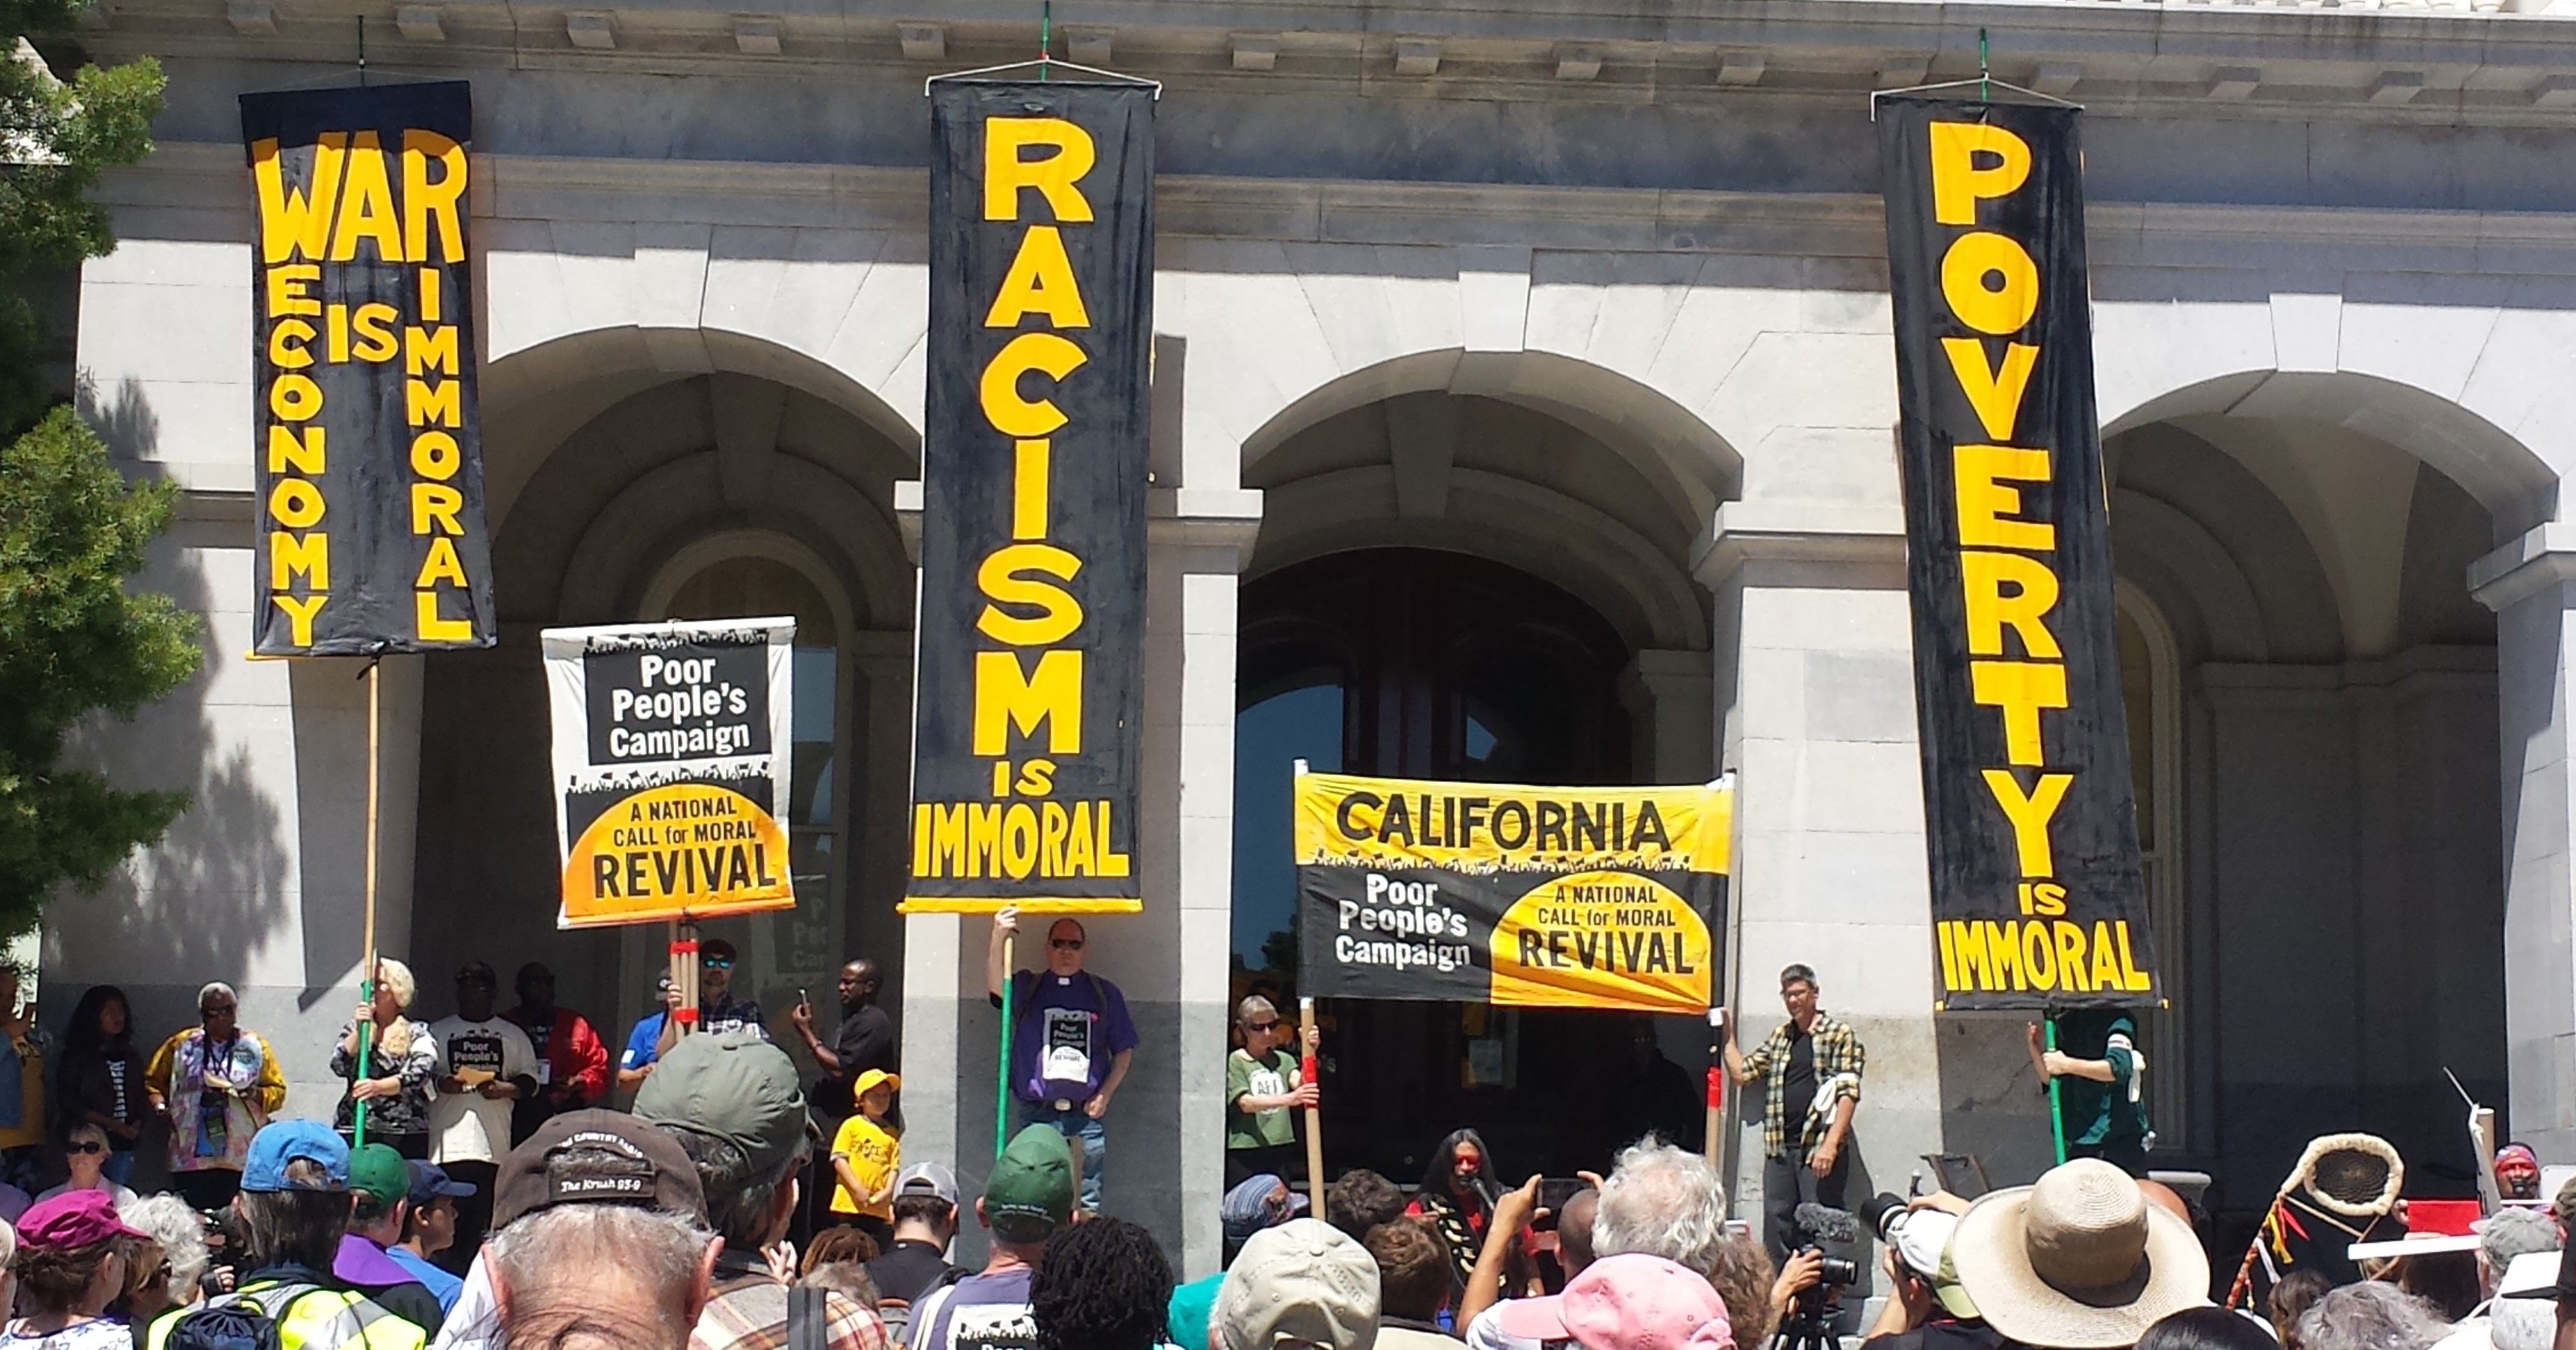 PRC joins the Poor People's Campaign! A report-back on the May 14 kick-off in Sacramento